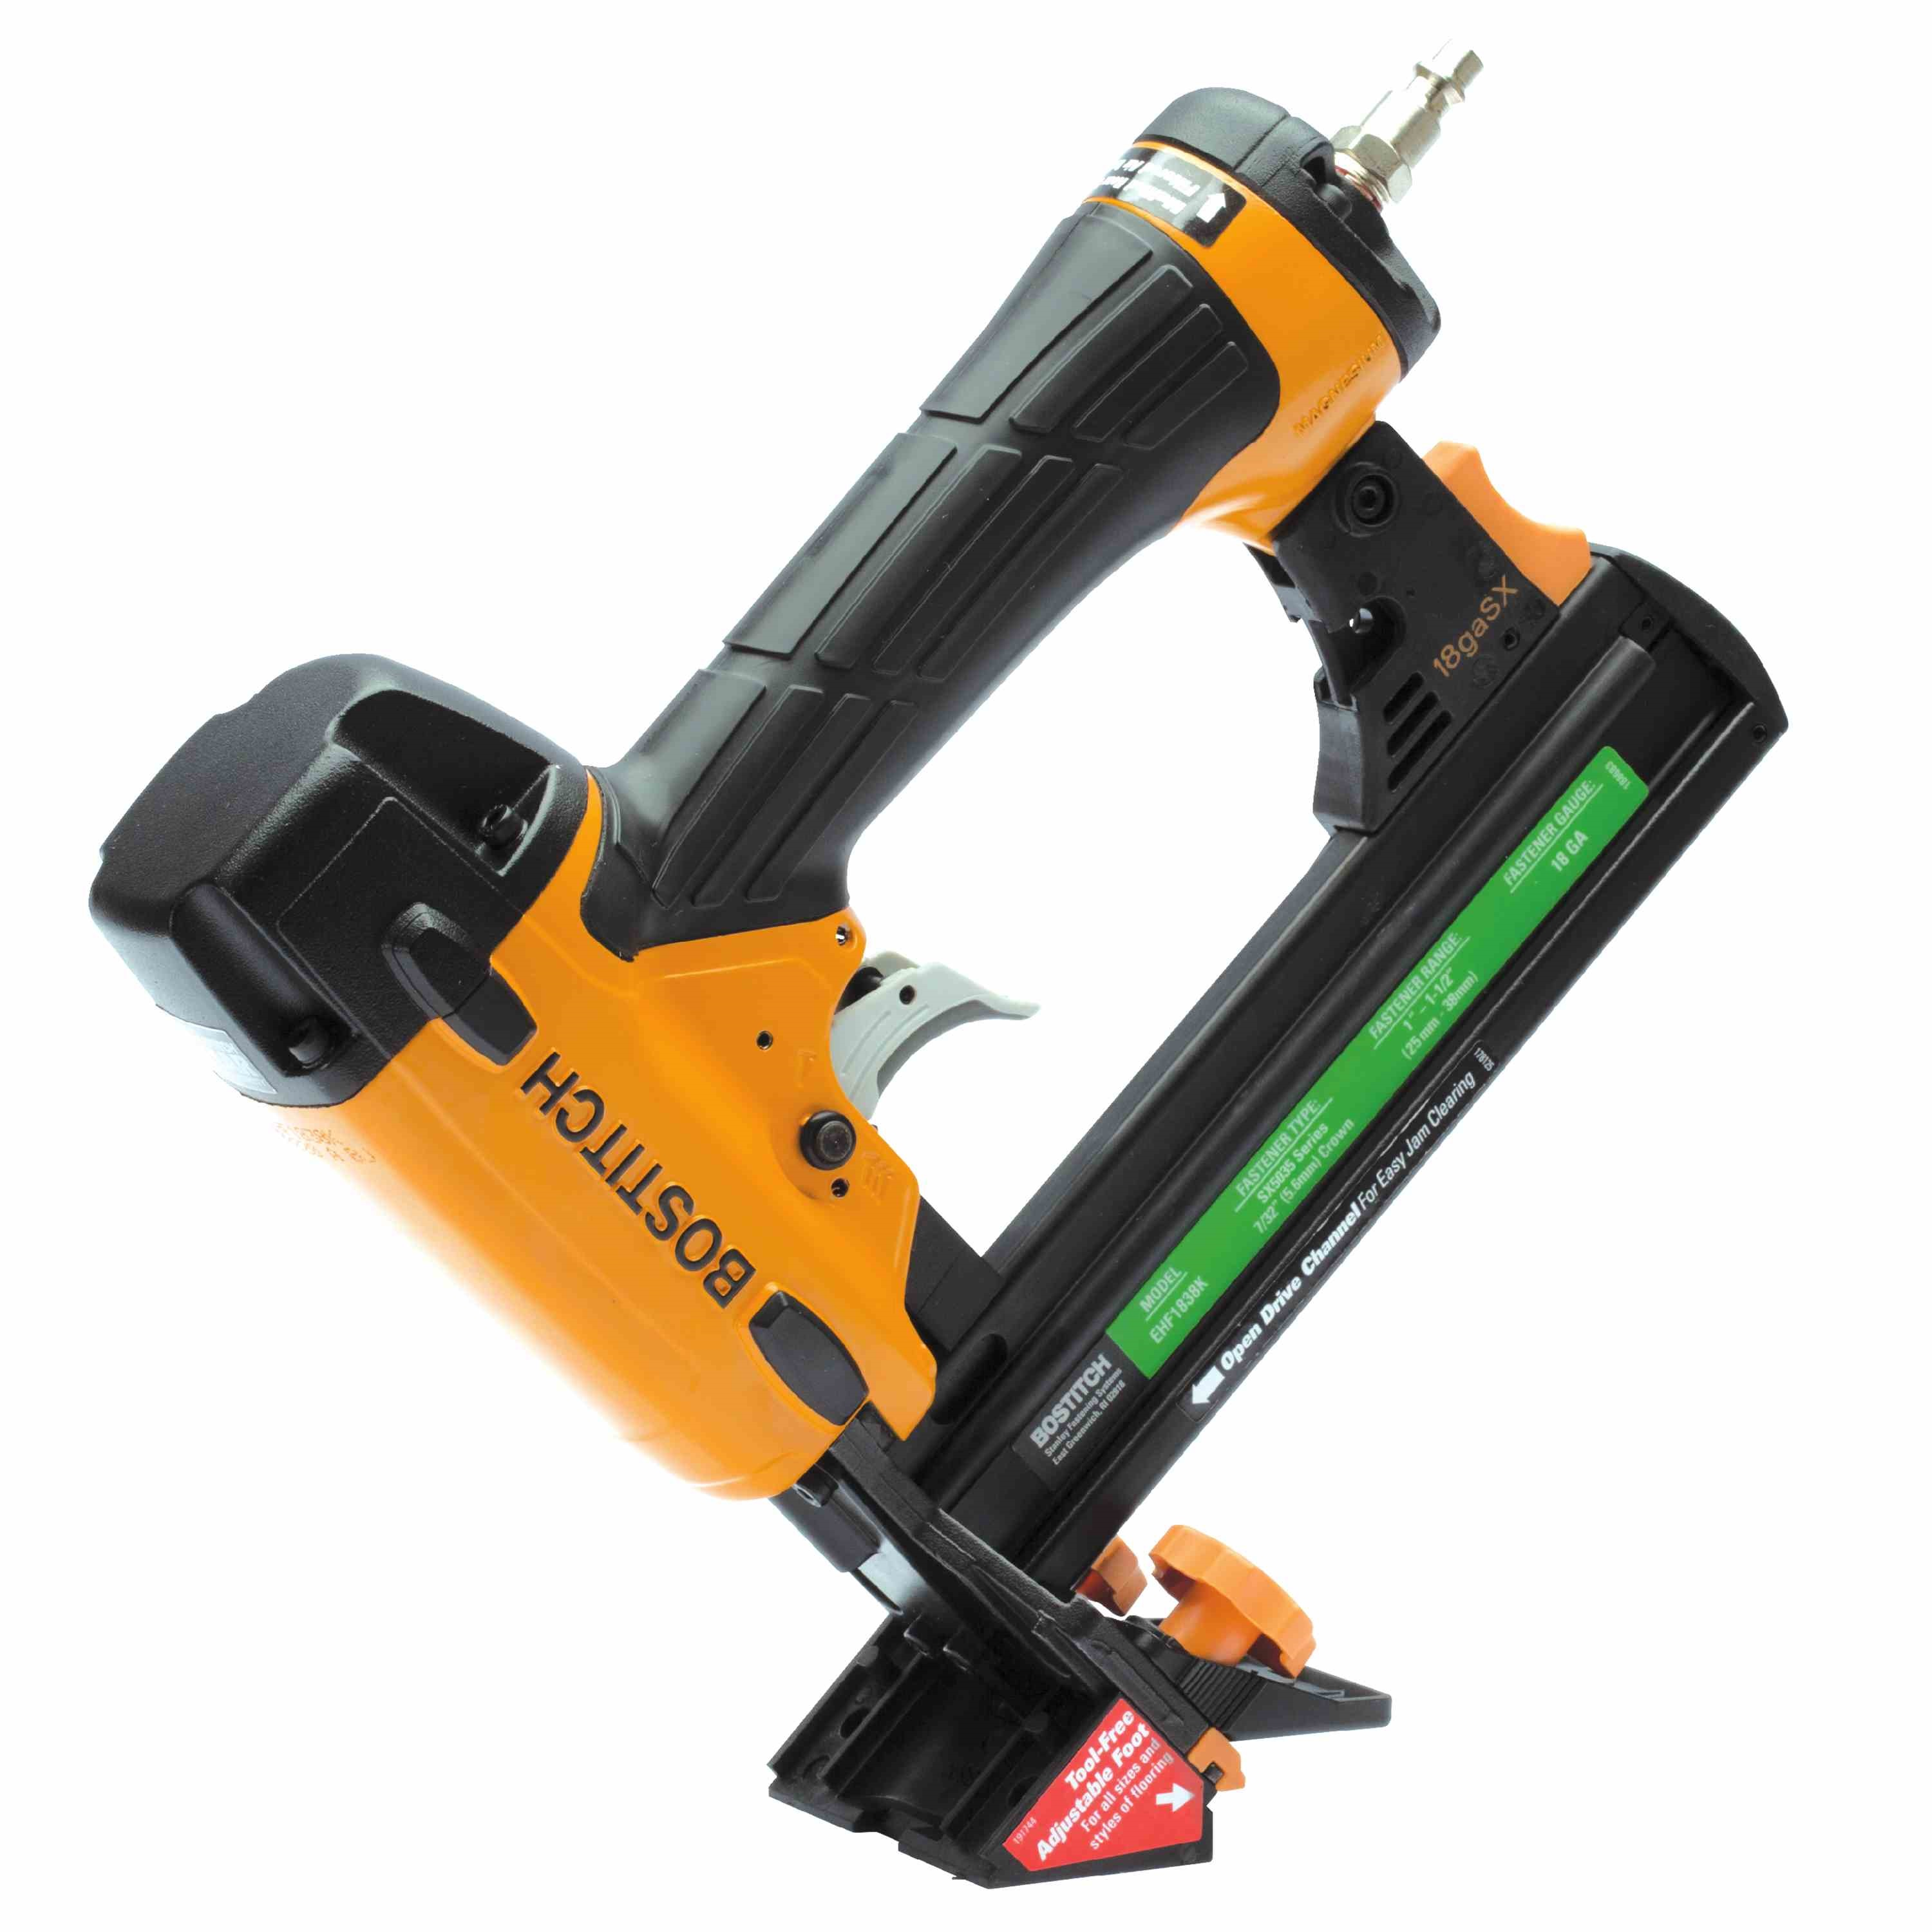 Bostitch - Bostitch 18 Gauge Flooring Stapler - EHF1838K